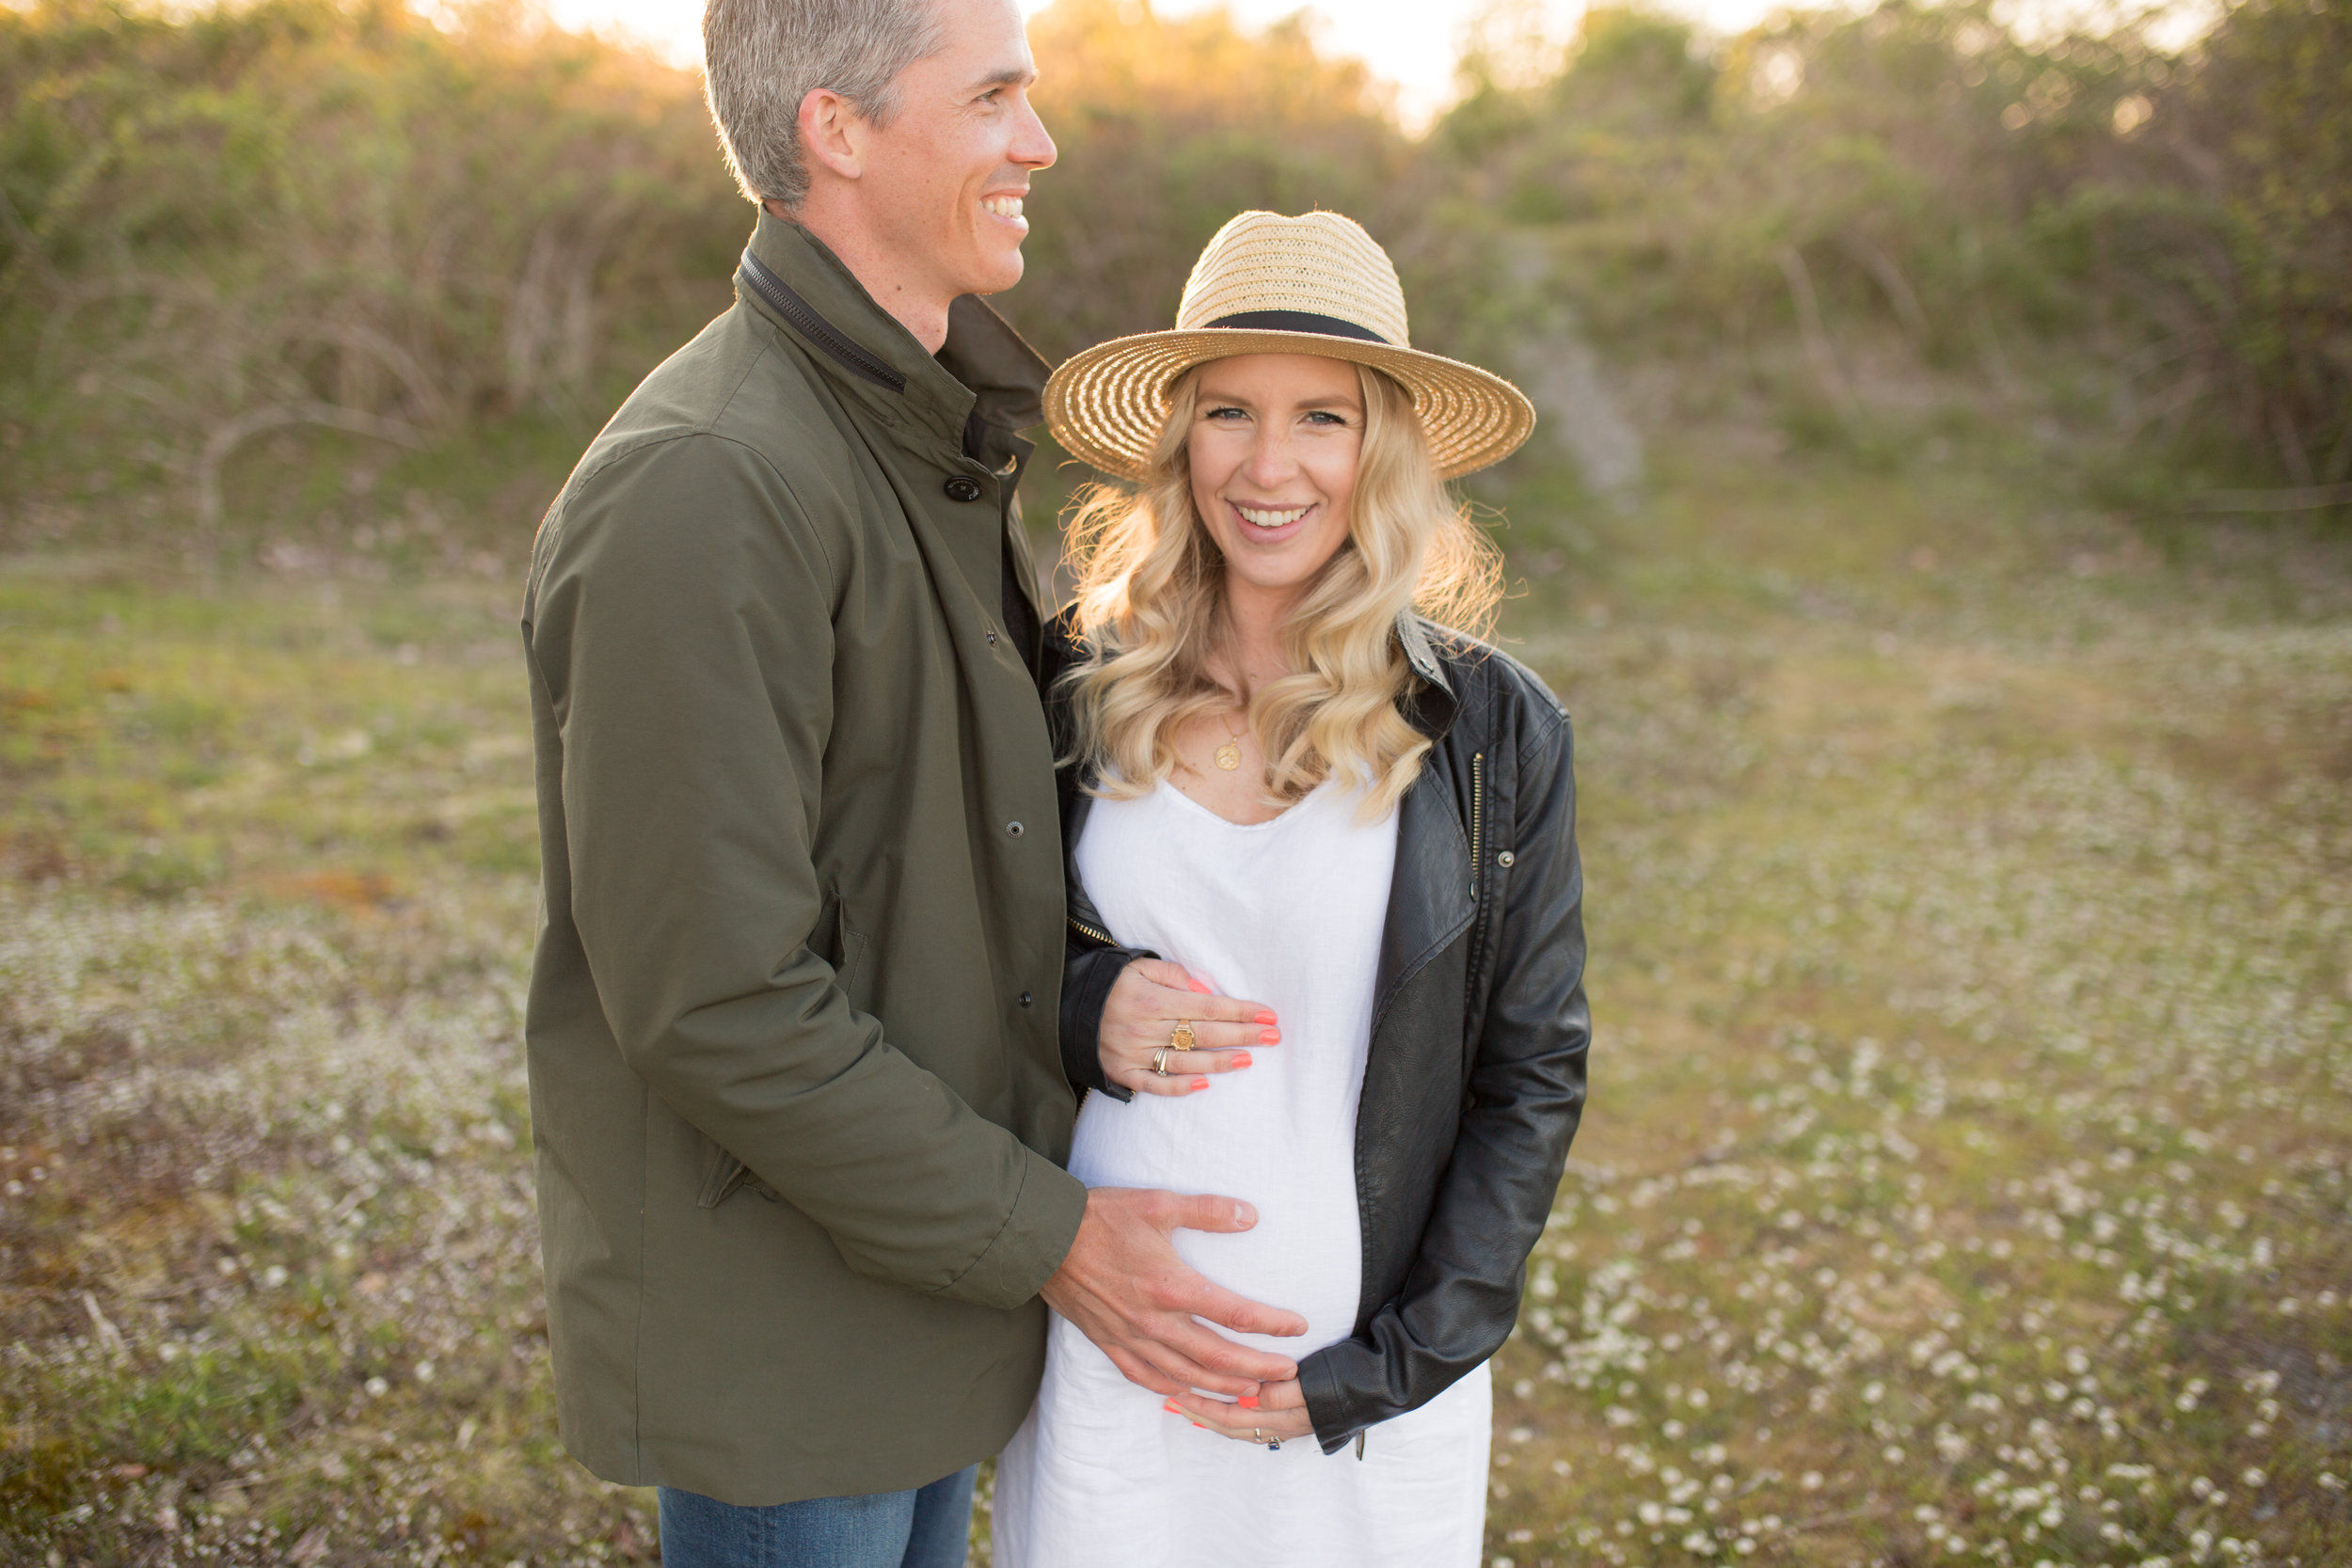 Jess&Geord Maternity Photos-36.jpg